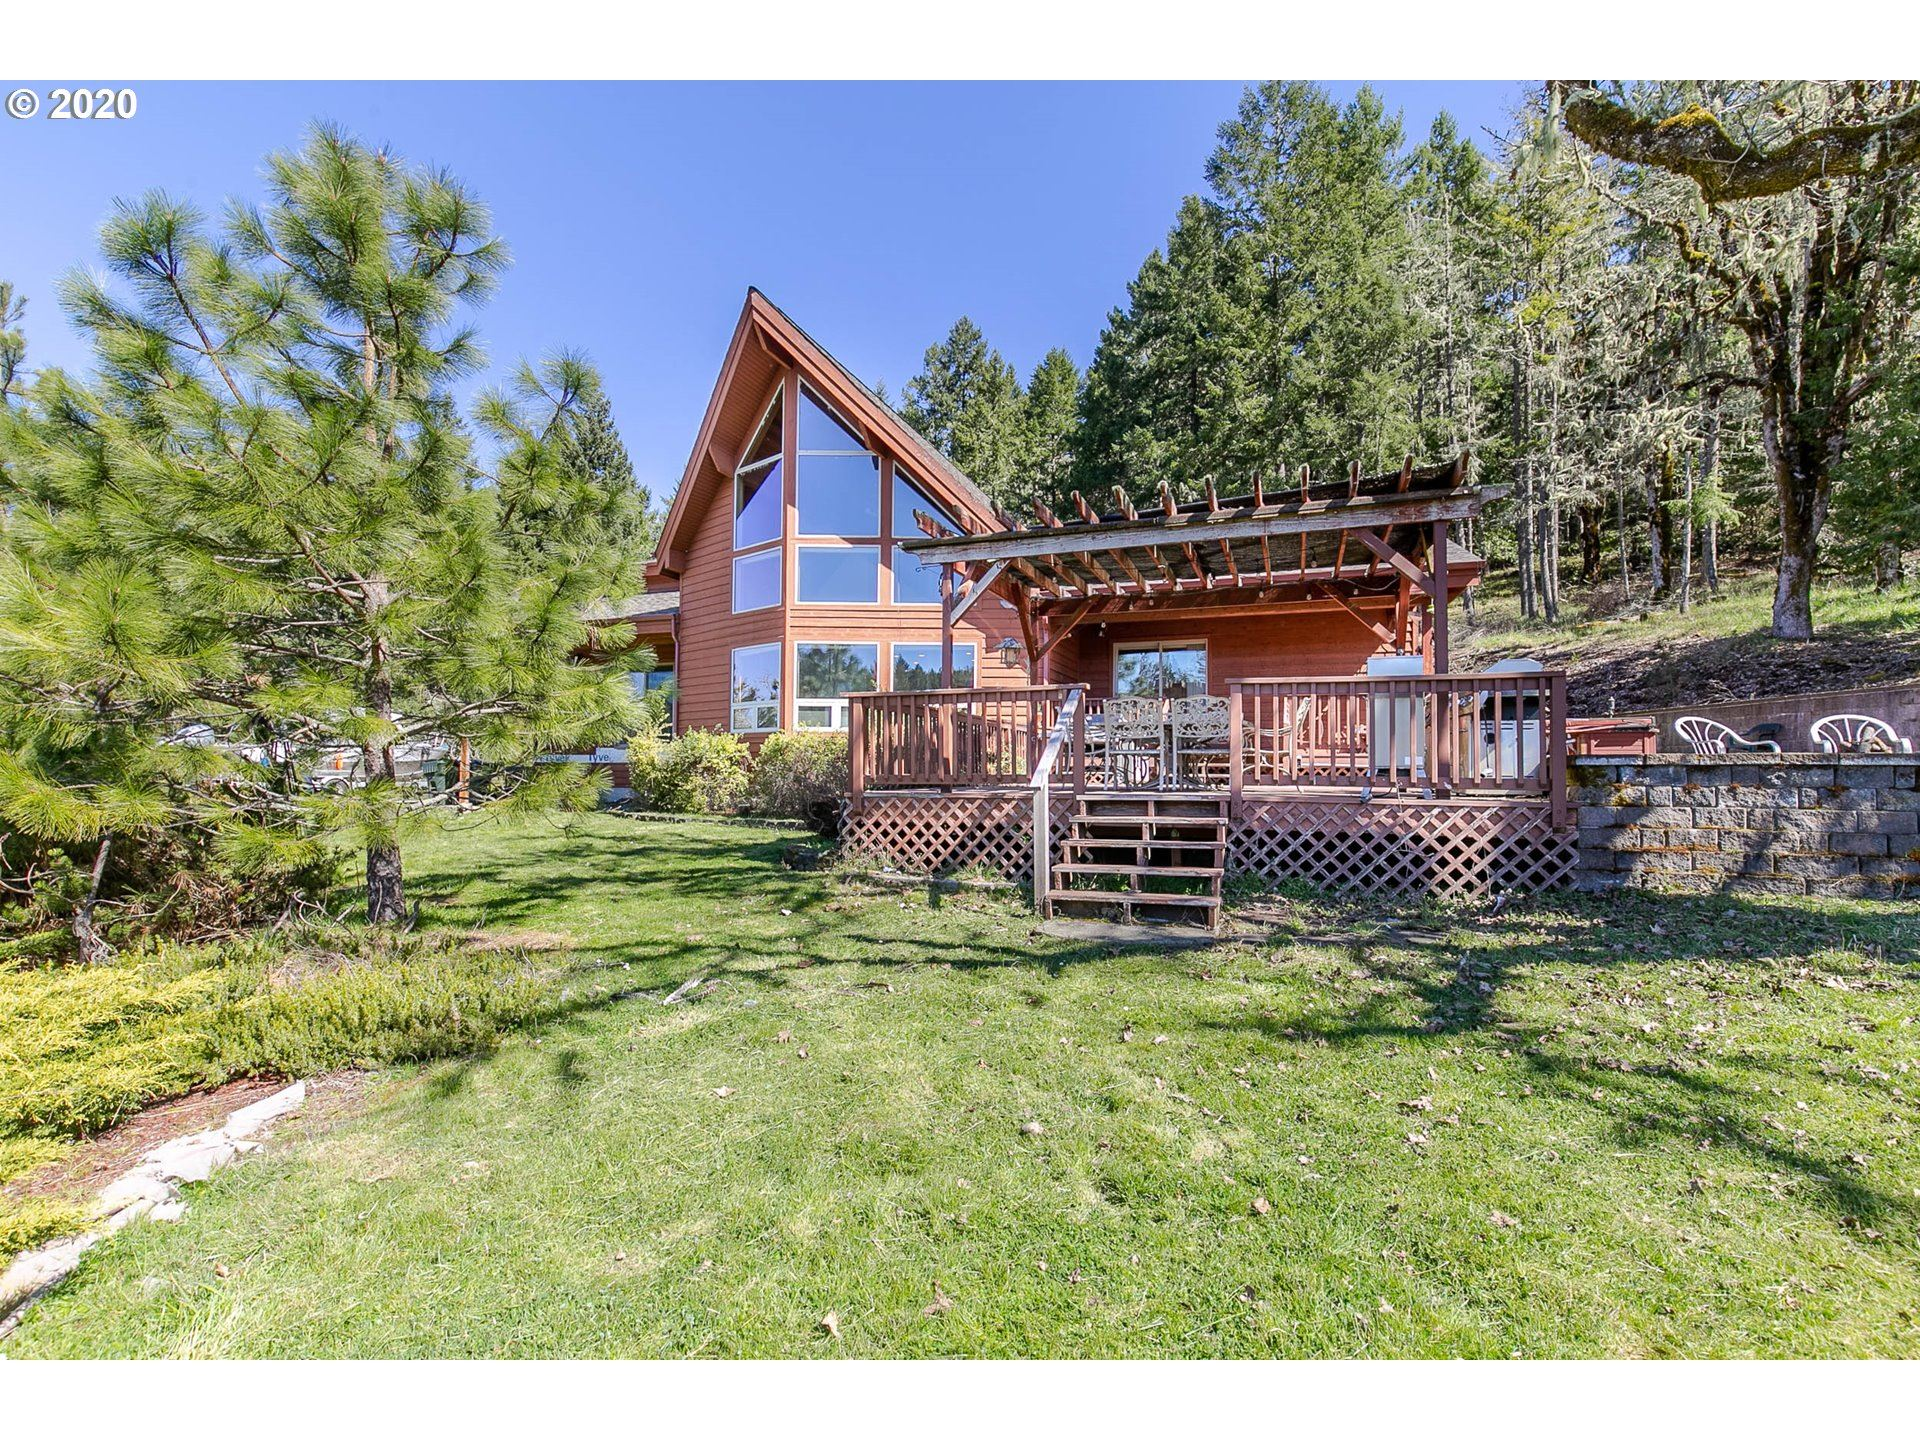 Photo for 31420 CAMAS SWALE RD, Creswell, OR 97426 (MLS # 20424125)